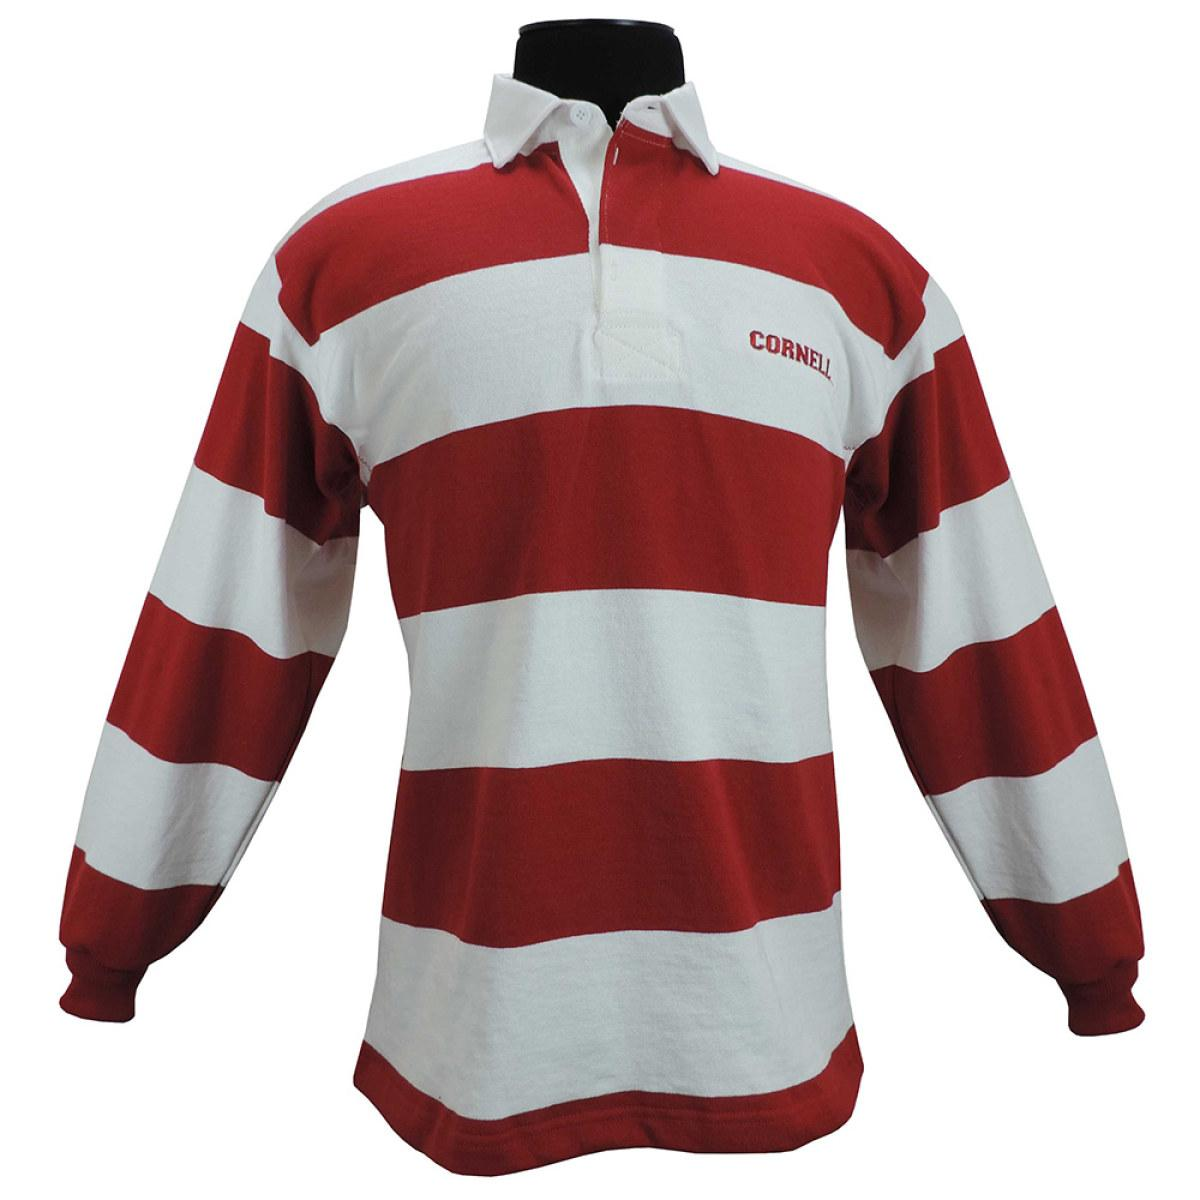 Rugby Shirt Red And White Stripes